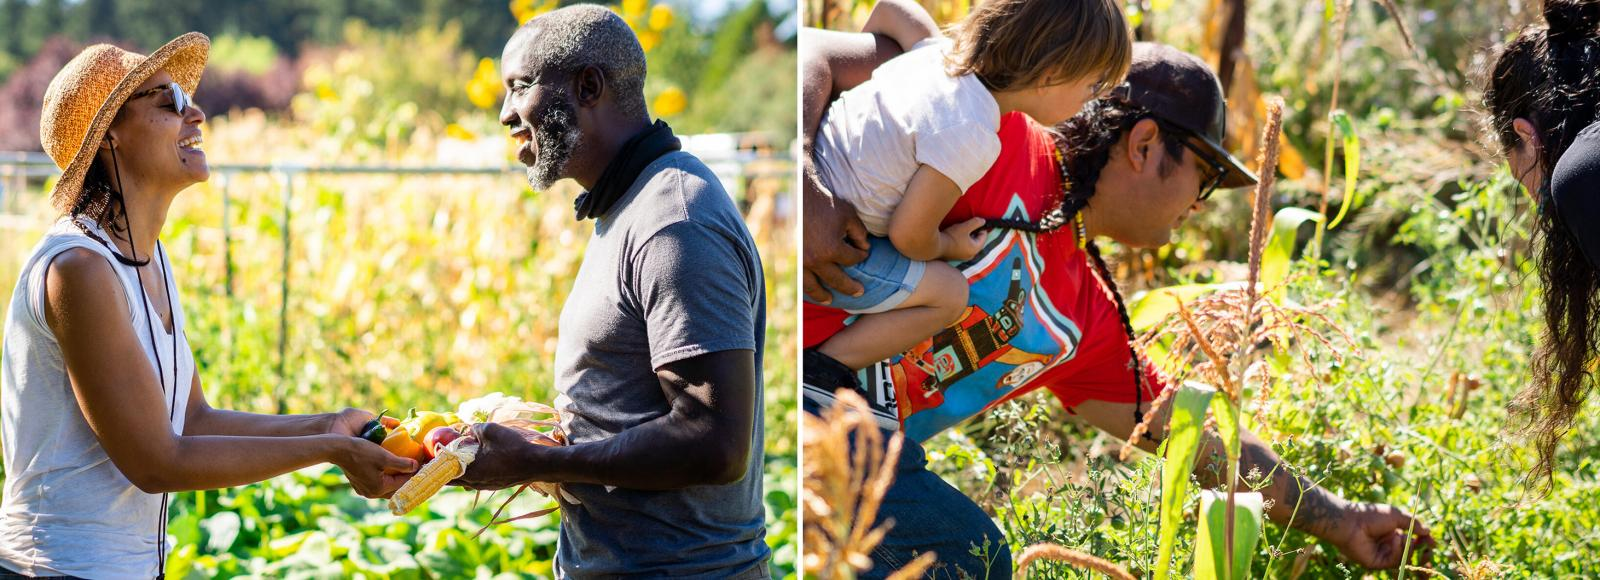 Two side-by-side photos. The left photo shows a woman and a man smiling joyously towards each other, holding vegetables between their extended hands. The right photo shows a man carrying a small child in one arm and picking plant matter with his other arm, while a woman leans in to see what he is picking.